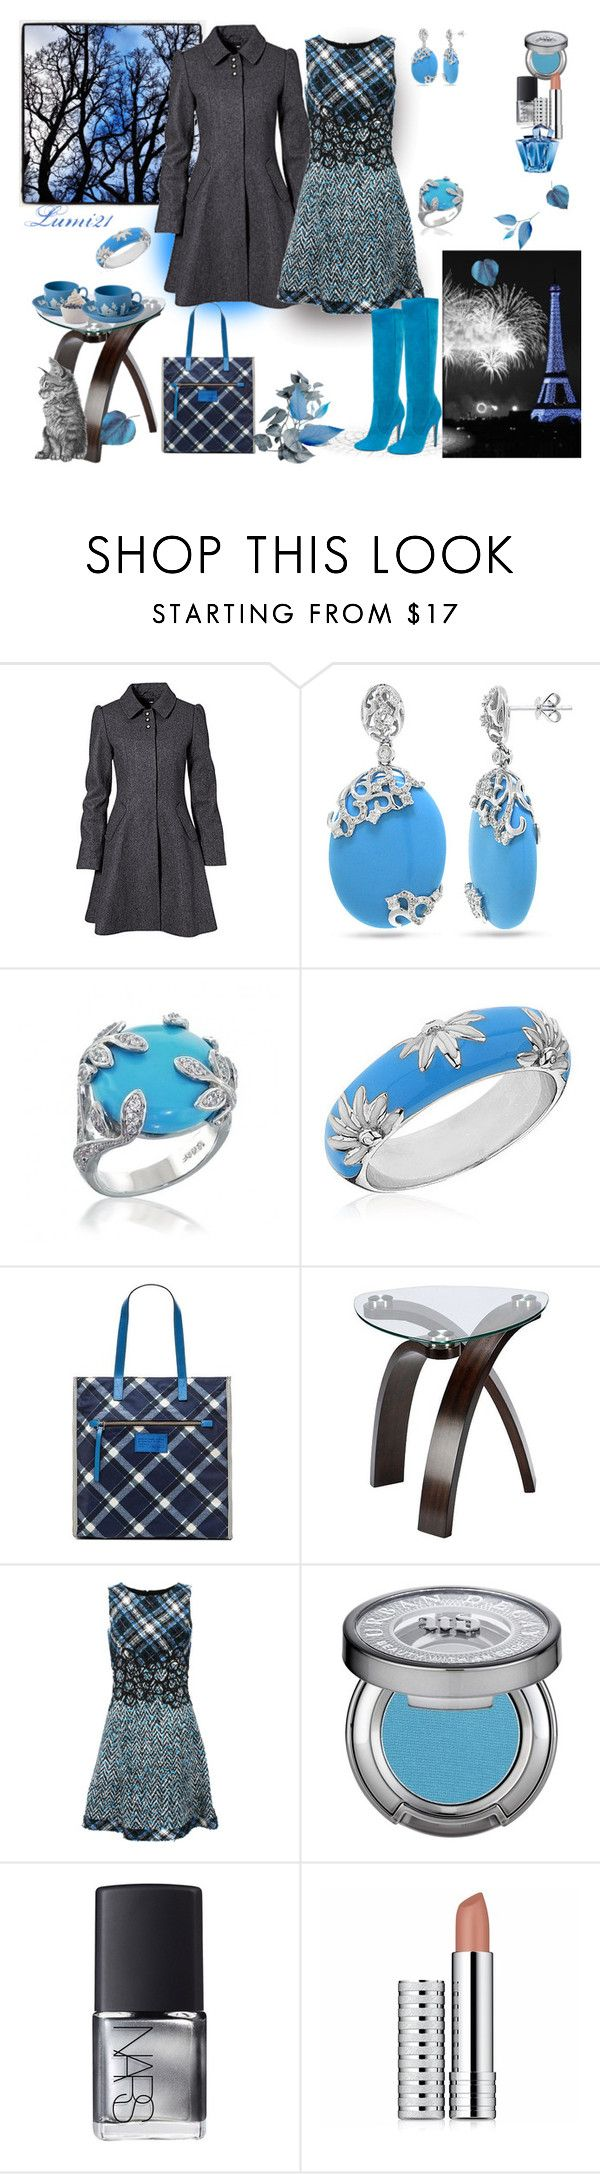 """blue gray"" by lumi-21 ❤ liked on Polyvore featuring H&M, Allurez, Reeds Jewelers, Marc by Marc Jacobs, Oscar de la Renta, Wedgwood, Jimmy Choo, Disney, Urban Decay and NARS Cosmetics"